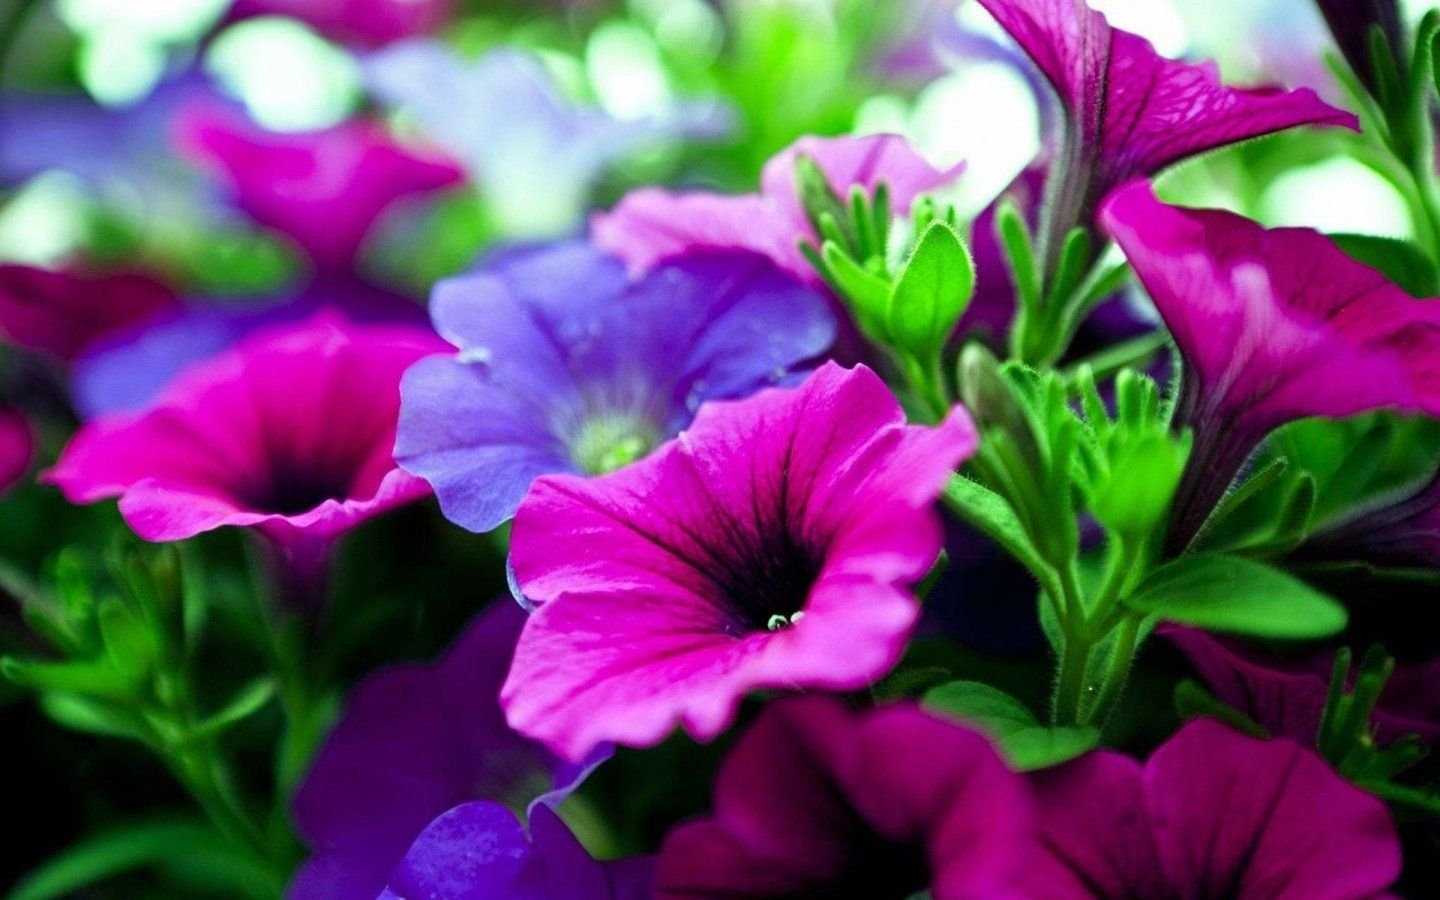 Flower Wallpaper HD For Desktop Free Download